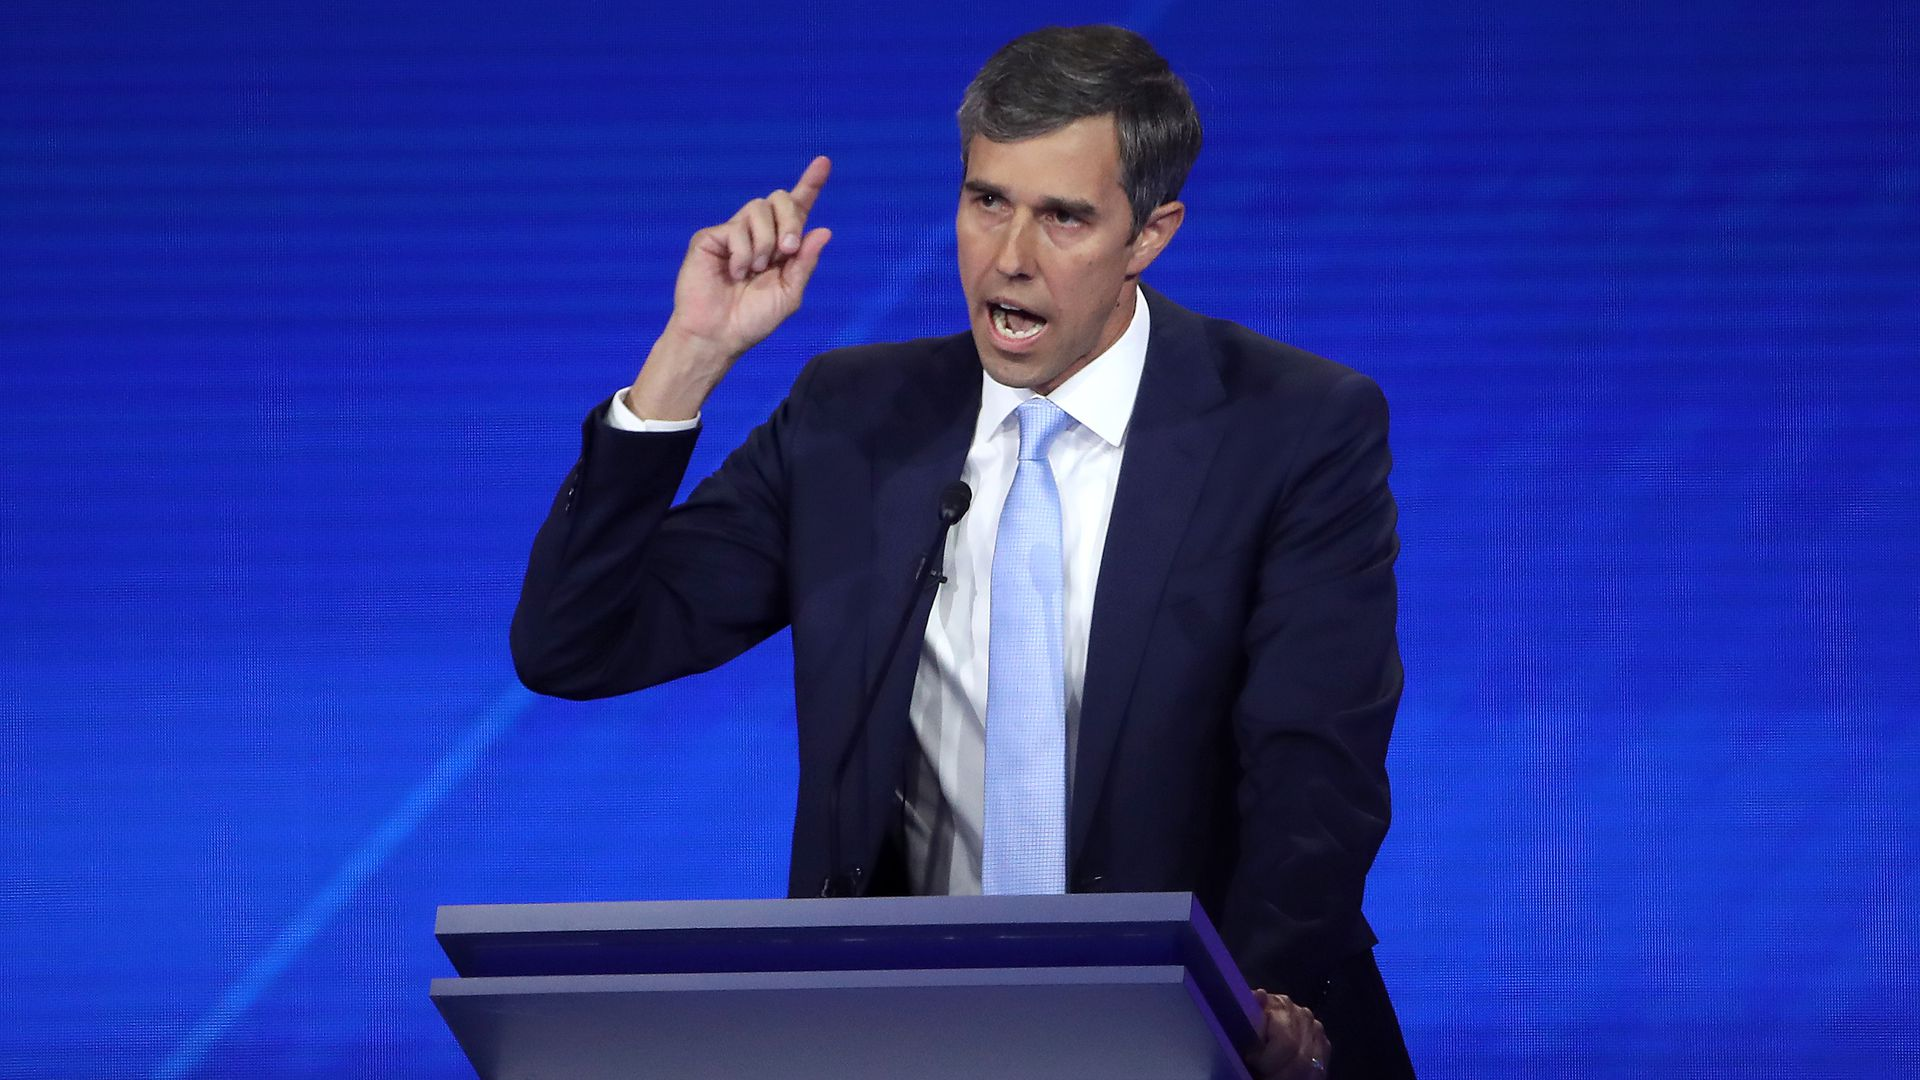 Democratic presidential candidate Beto O'Rourke speaks during the Democratic Presidential Debate.